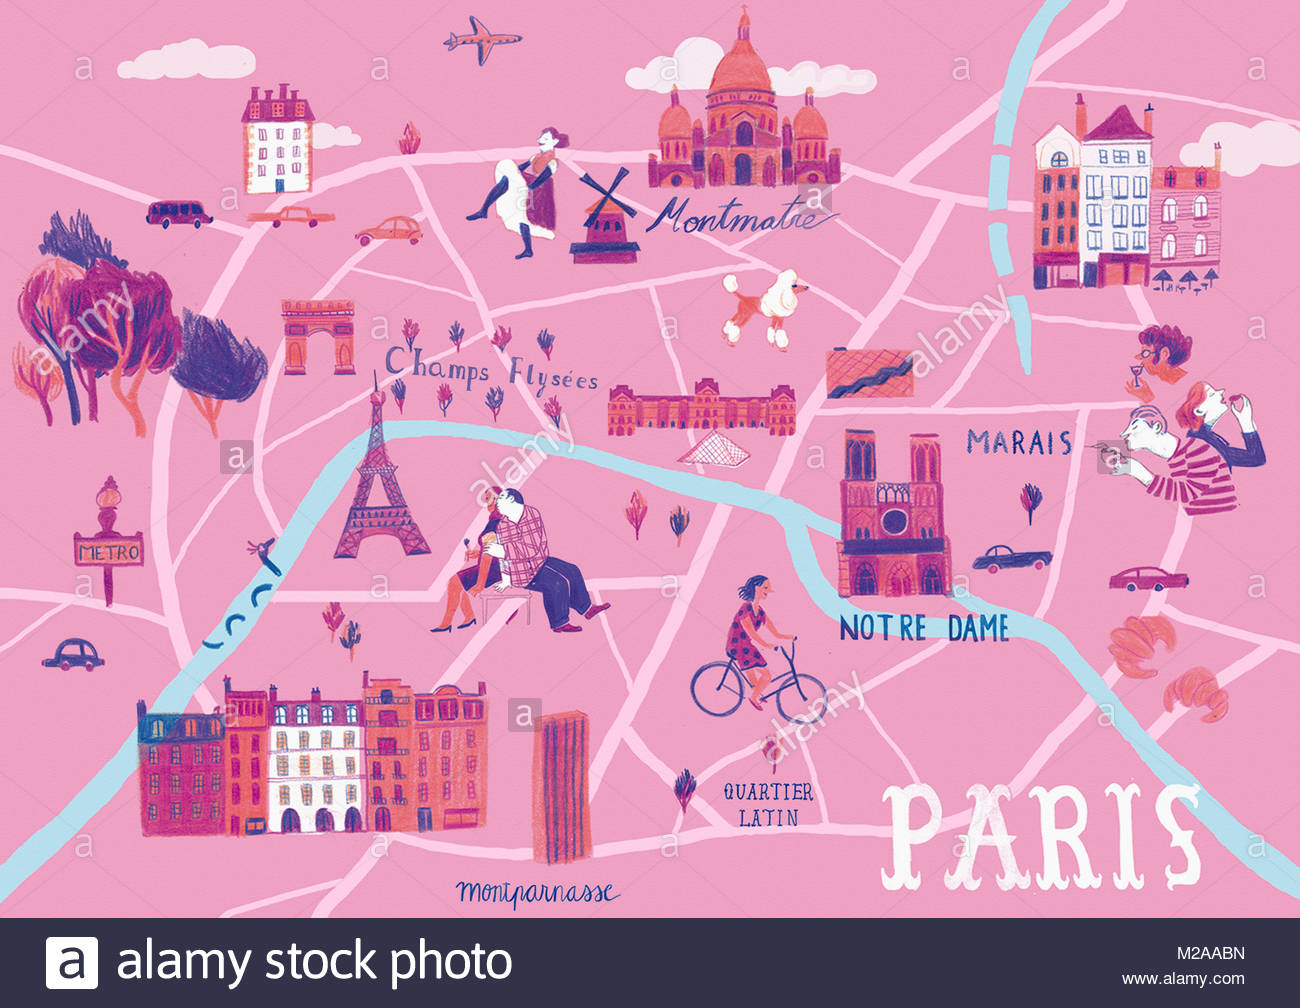 Illustrated map of Paris, France Stock Photo: 173560681 - Alamy on photography of paris, high resolution map of paris, simplified map of paris, fun map of paris, highlighted map of paris, religion map of paris, english map of paris, watercolor of paris, large map of paris, travel map of paris, white map of paris, detailed street map of paris, printable map of paris, outlined map of paris, antique map of paris, color map of paris, illustration of paris, interactive map of paris, history map of paris, sports map of paris,